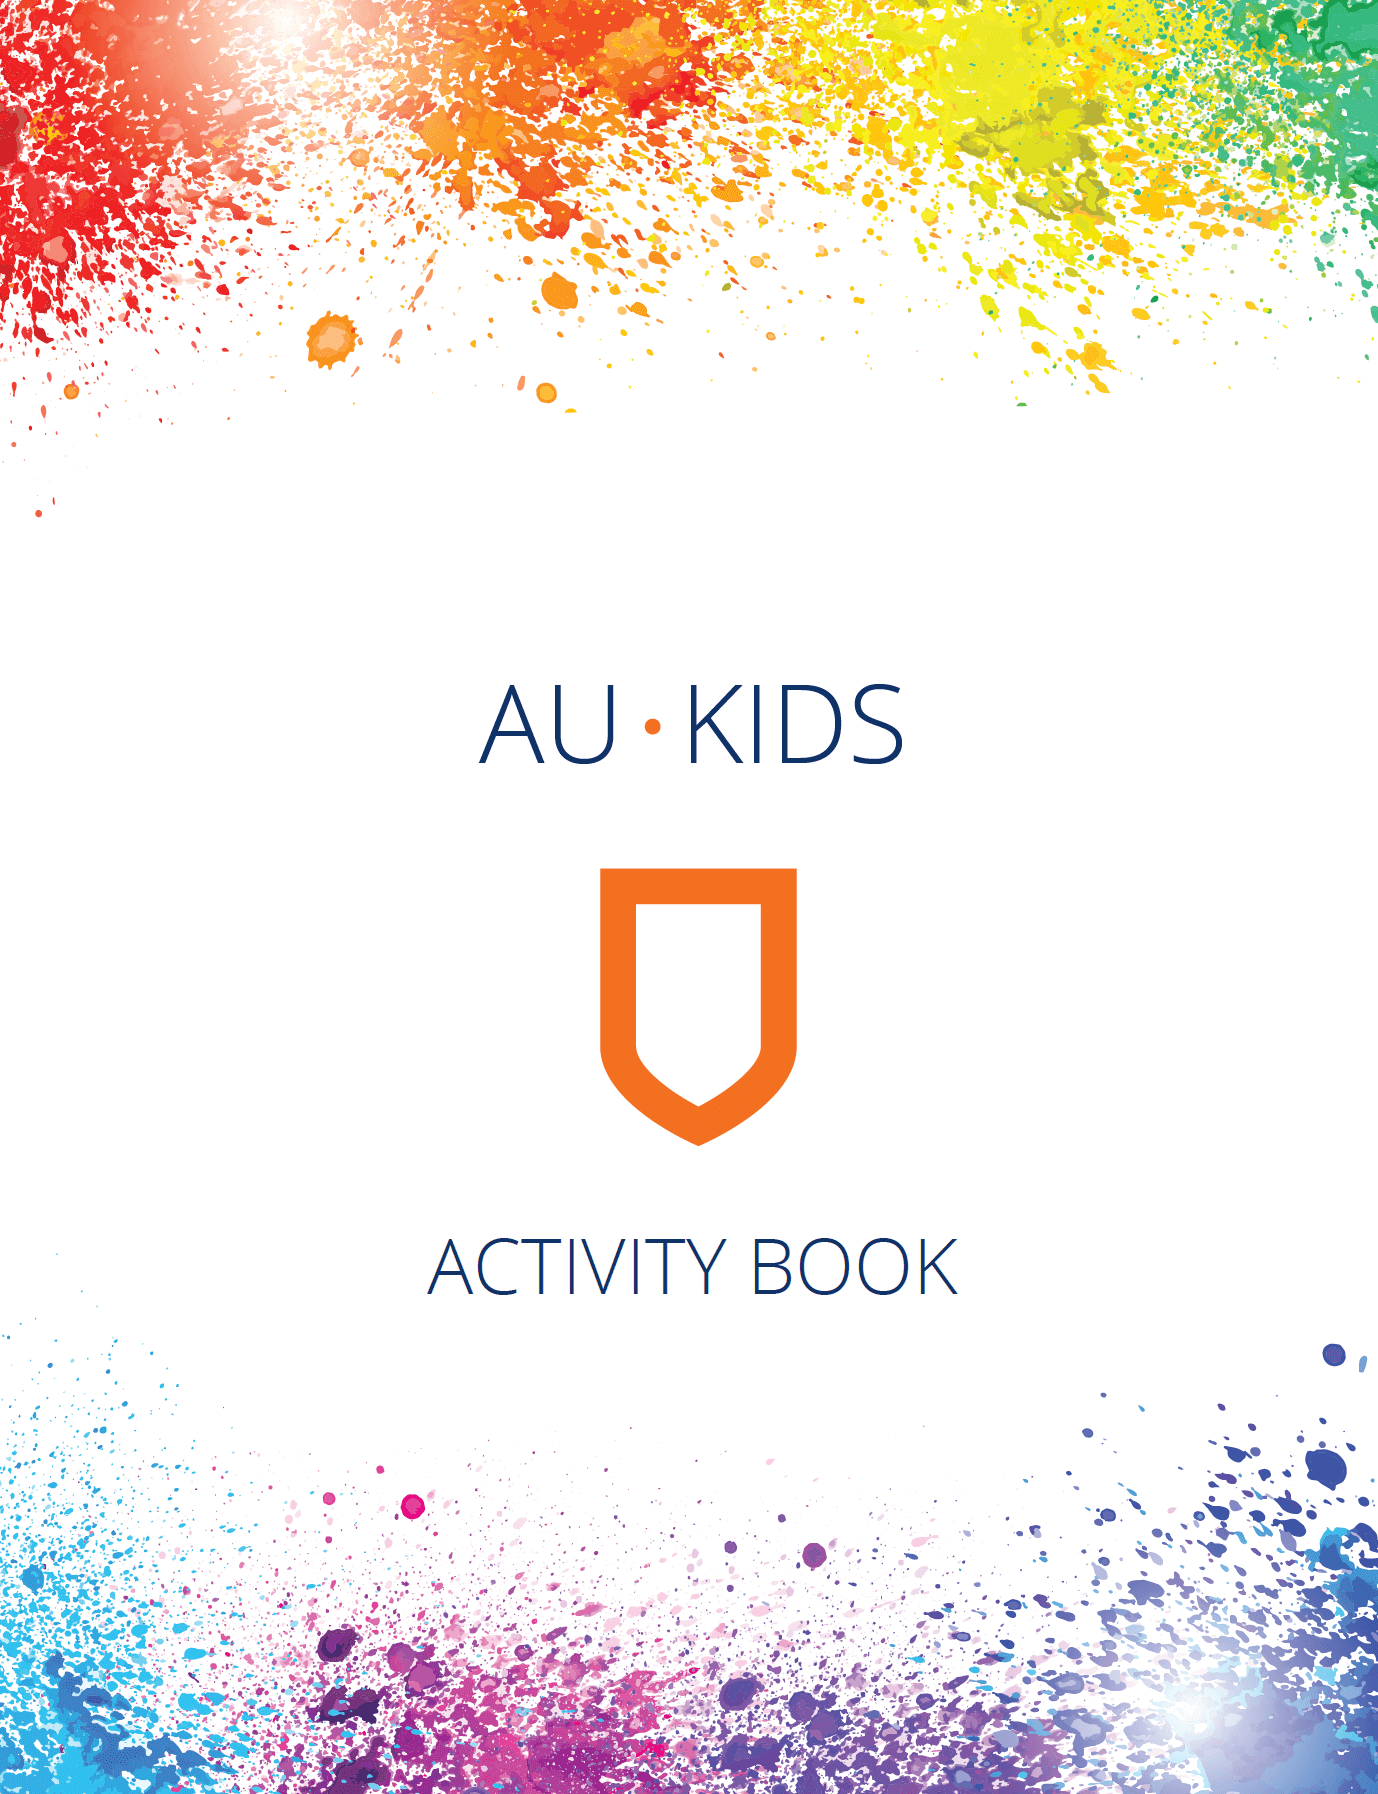 AU-KIds Activity Book